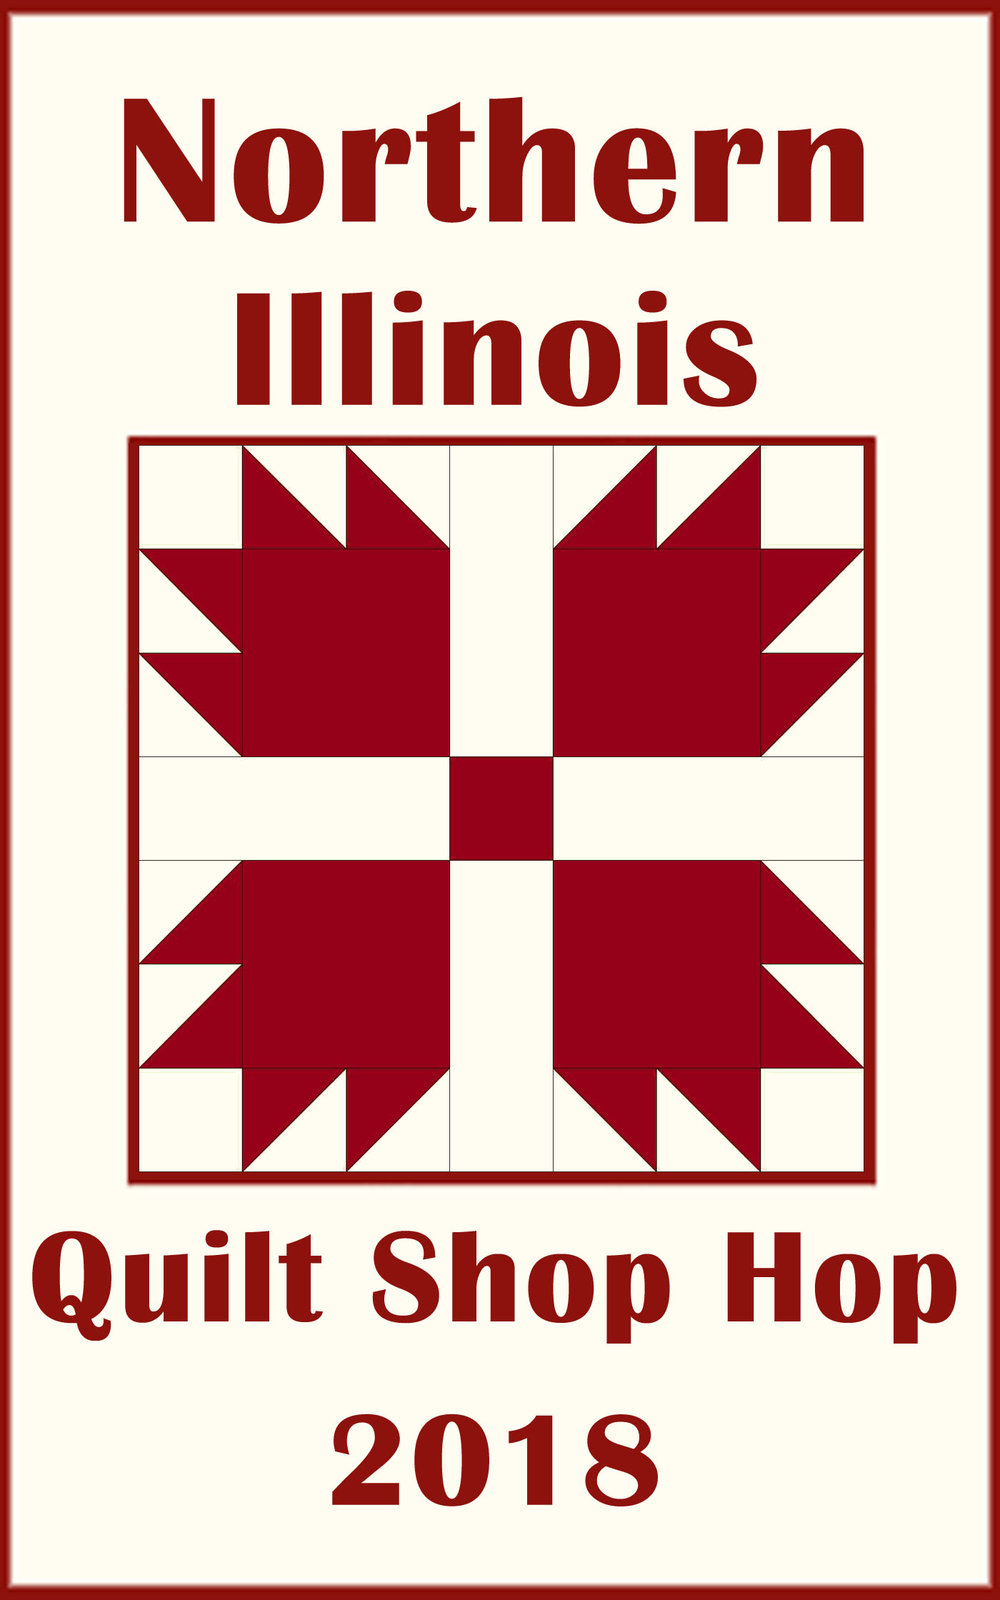 TQT is excited to be part of the Northern Illinois Quilt Shop Hop again. Thirty three of the best quilt shops in Illinois are participating. The Hop runs all summer - from June 1 - August 31. On the day you get your passport stamped, you will receive a 15% discount on regularly priced merchandise. Visit all 33 shops and be eligible to win the grand prize of a Quilting Cruise for you and a friend! There are also prizes for visiting the shops within one of three regions. TQT is in Region 3. Passports are available in the shop, or by clicking the link below. - --> Click here to visit the NIQSH website for more details.--> Click here to download your Region 3 passport.